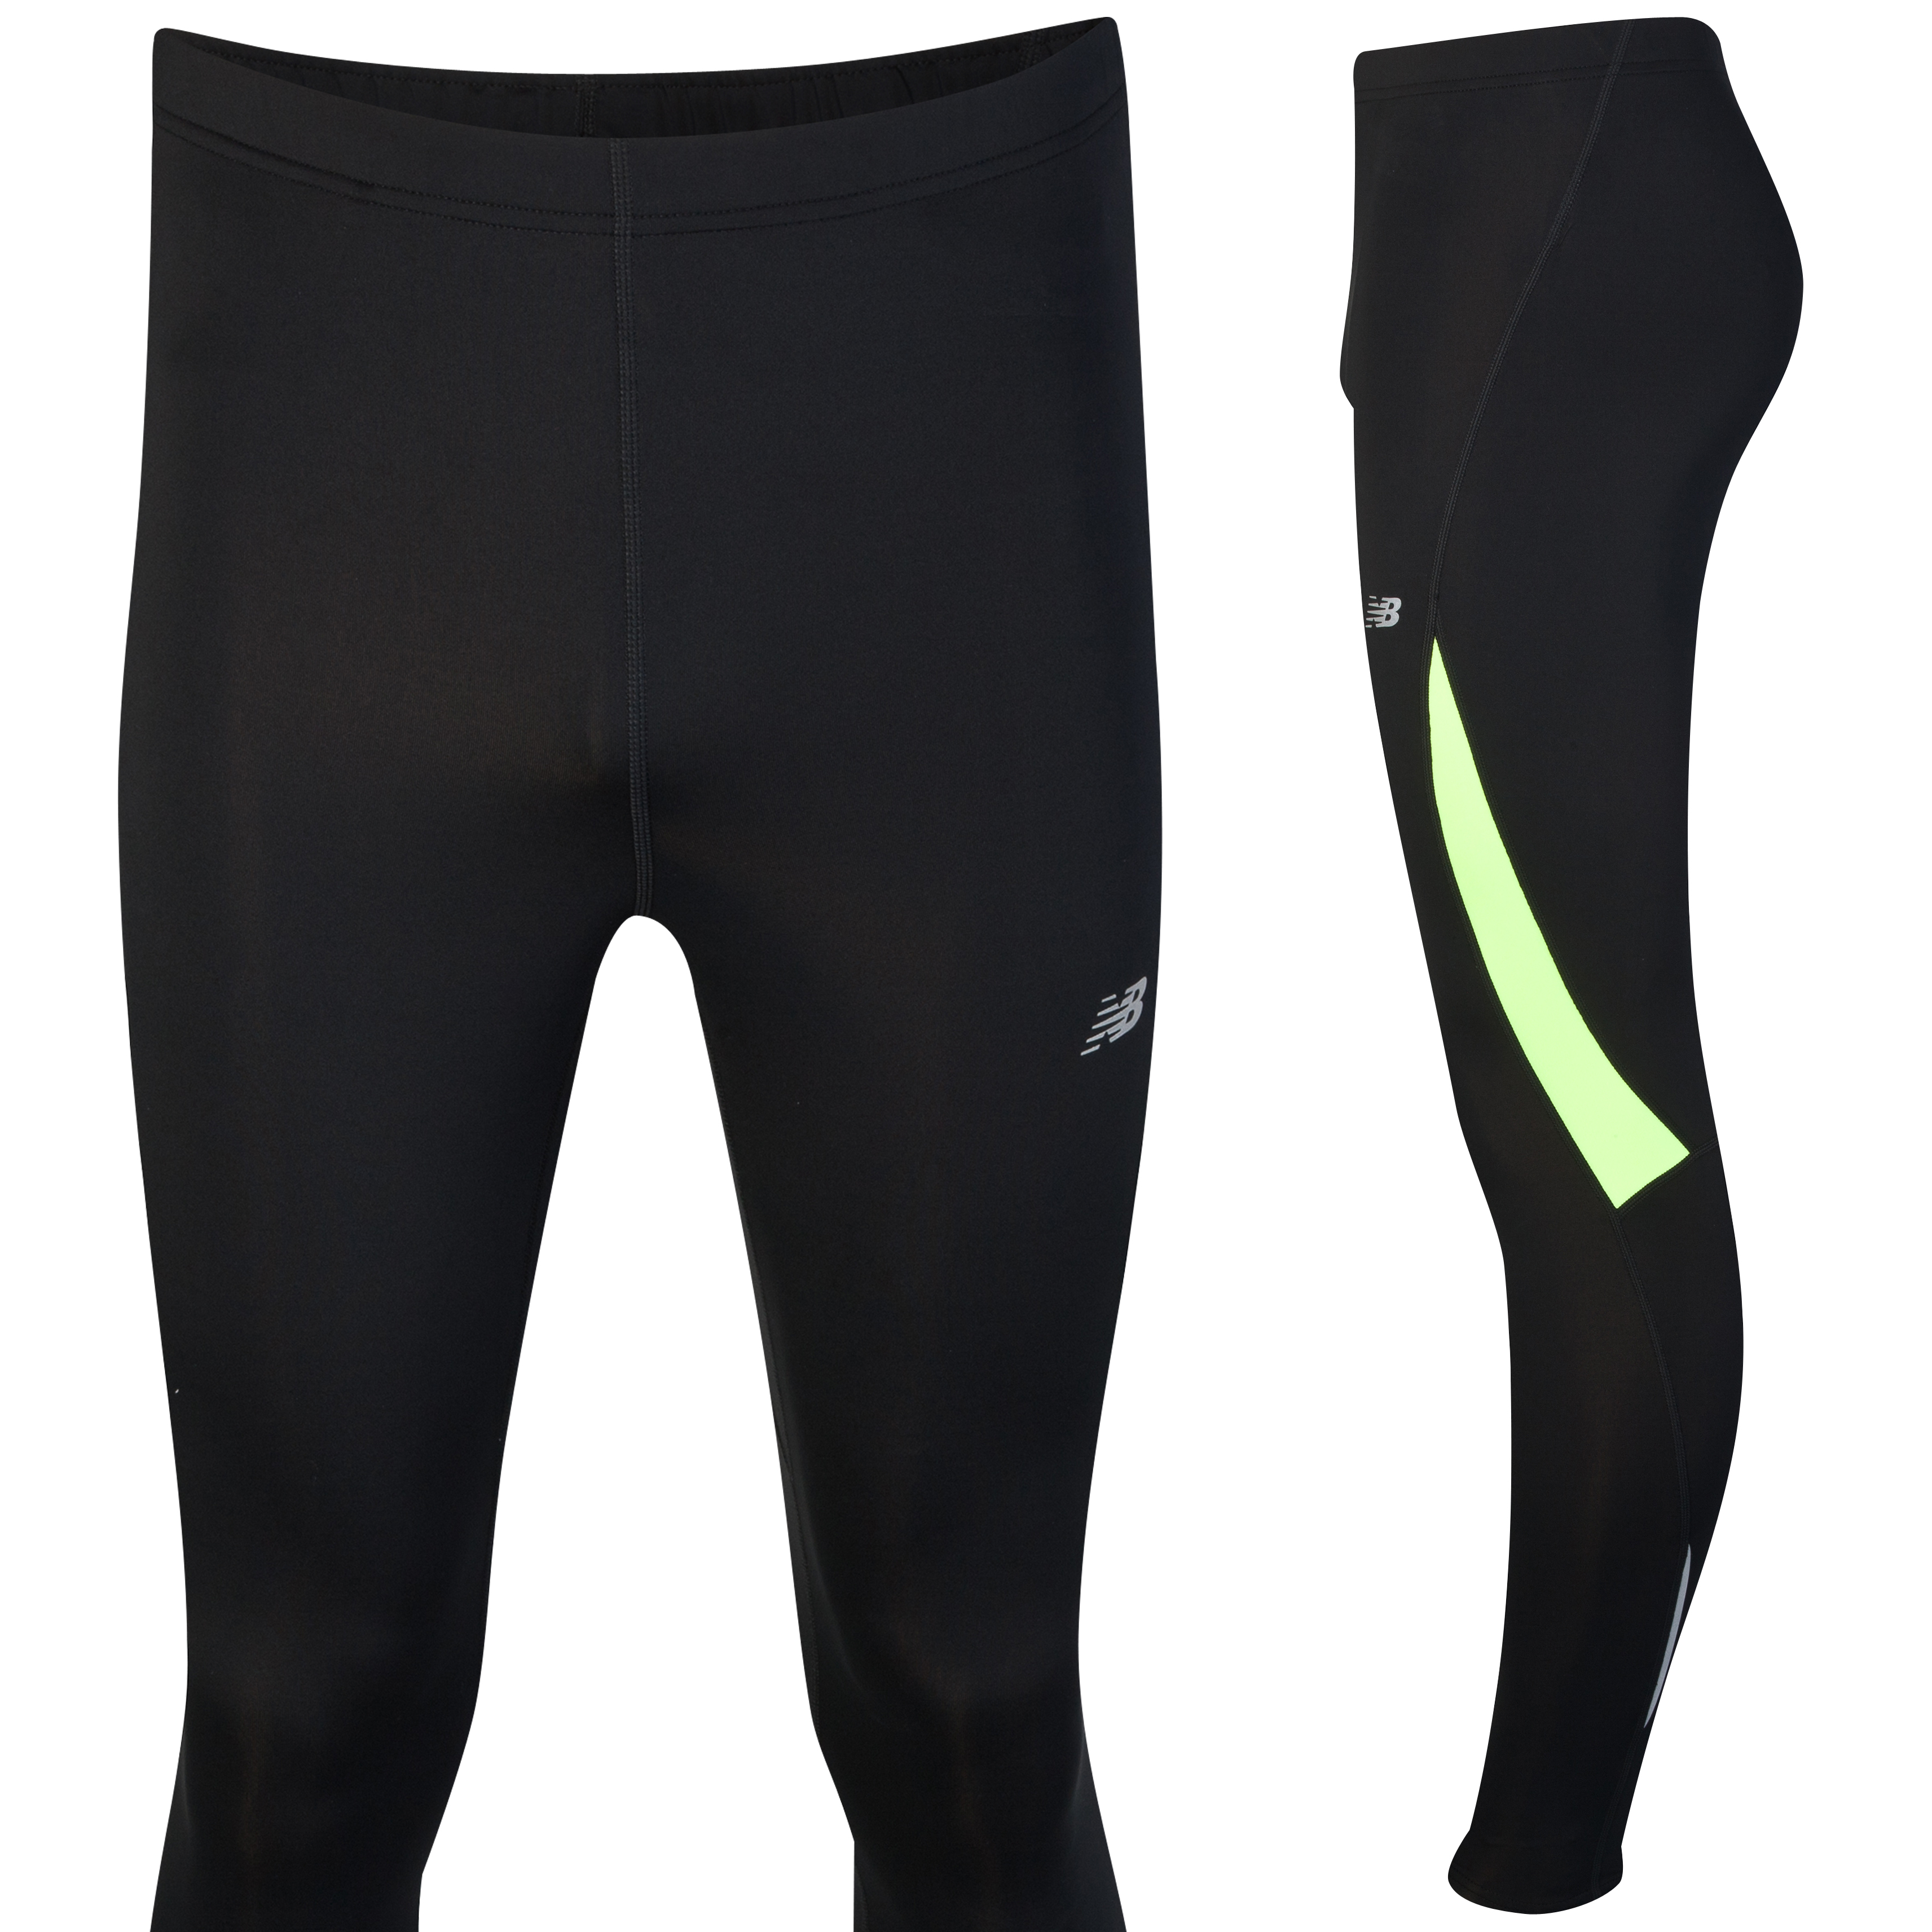 New Balance Go 2 Tights - Black/Yellow